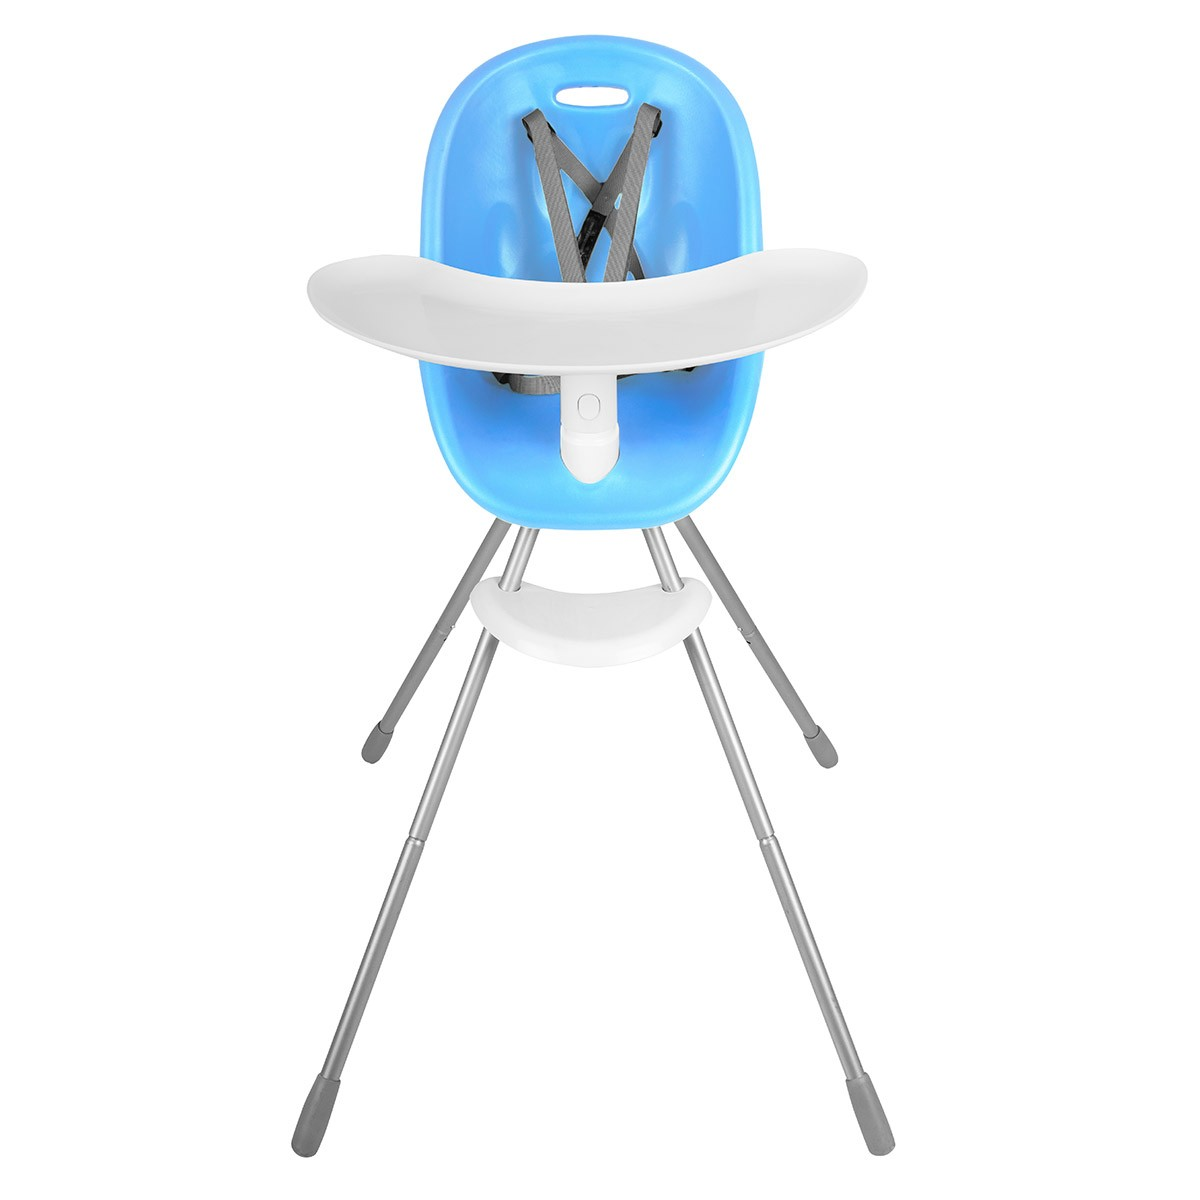 phil and teds poppy high chair baby bath chairs asda blue